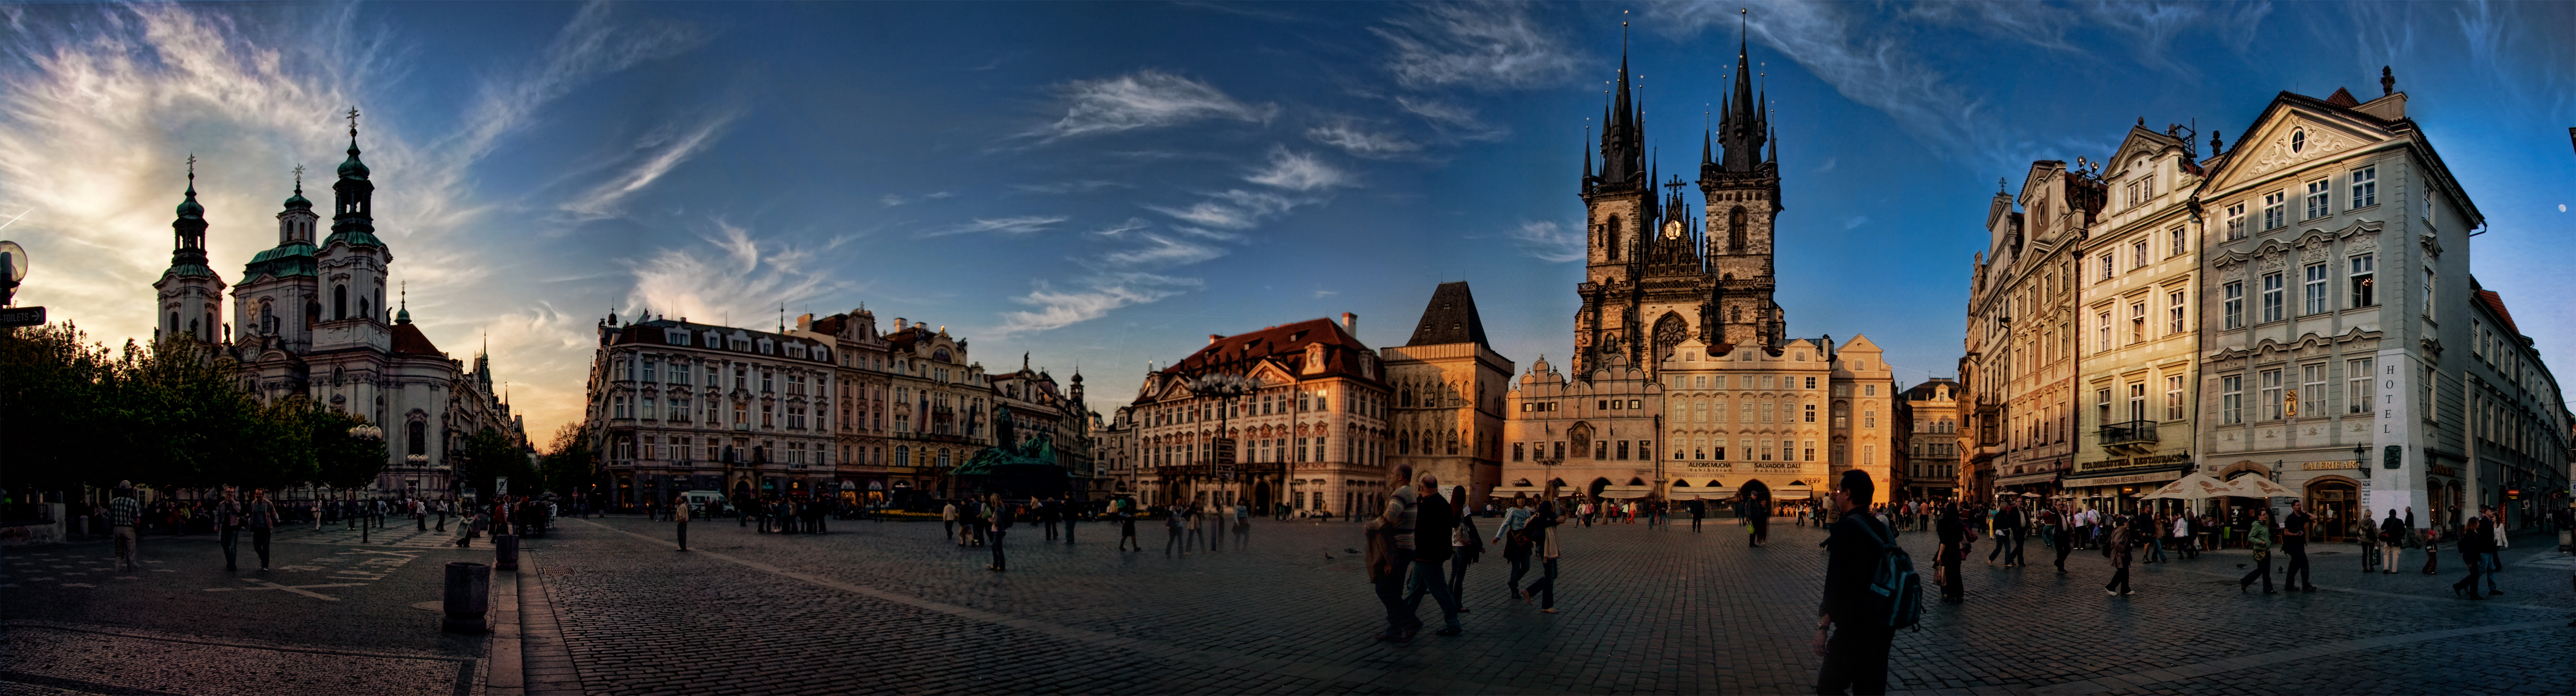 Images of Panorama | 5000x1351